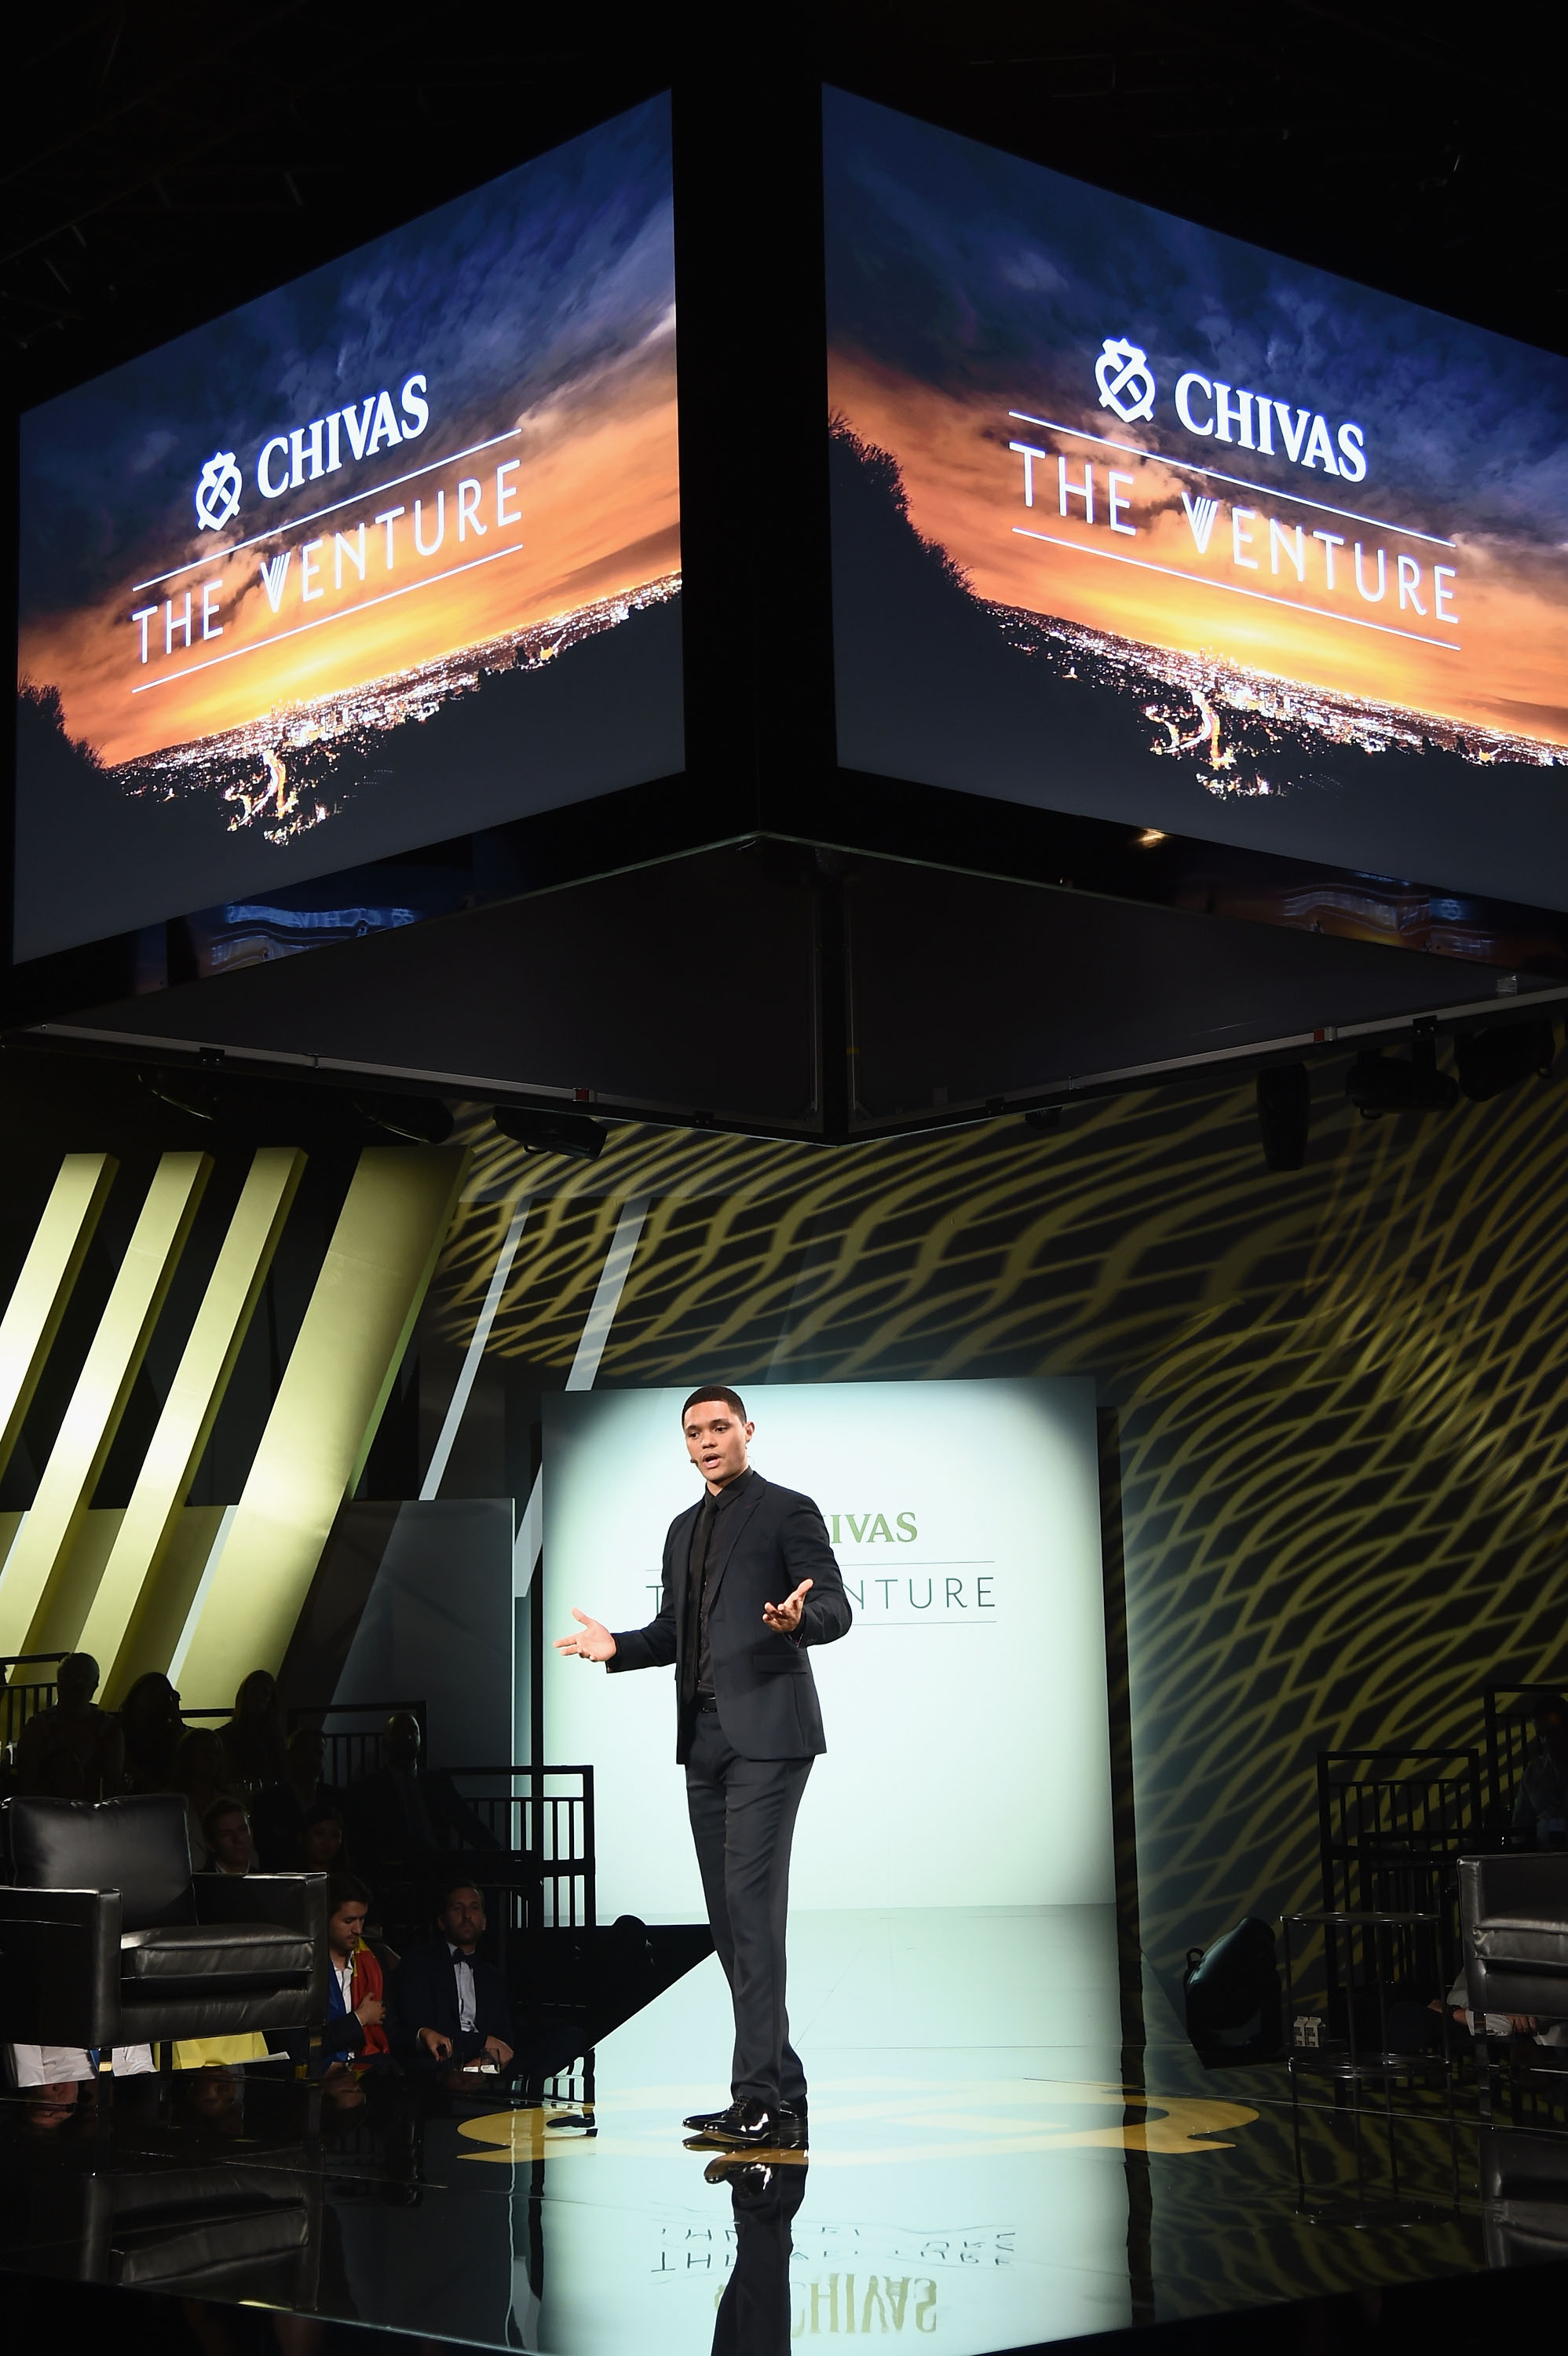 NEW YORK, NY - JULY 14:  Host Trevor Noah on stage at Chivas' The Venture Final Event on July 14, 2016 in New York City.  (Photo by Michael Loccisano/Getty Images for Chivas The Venture) *** Local Caption *** Trevor Noah